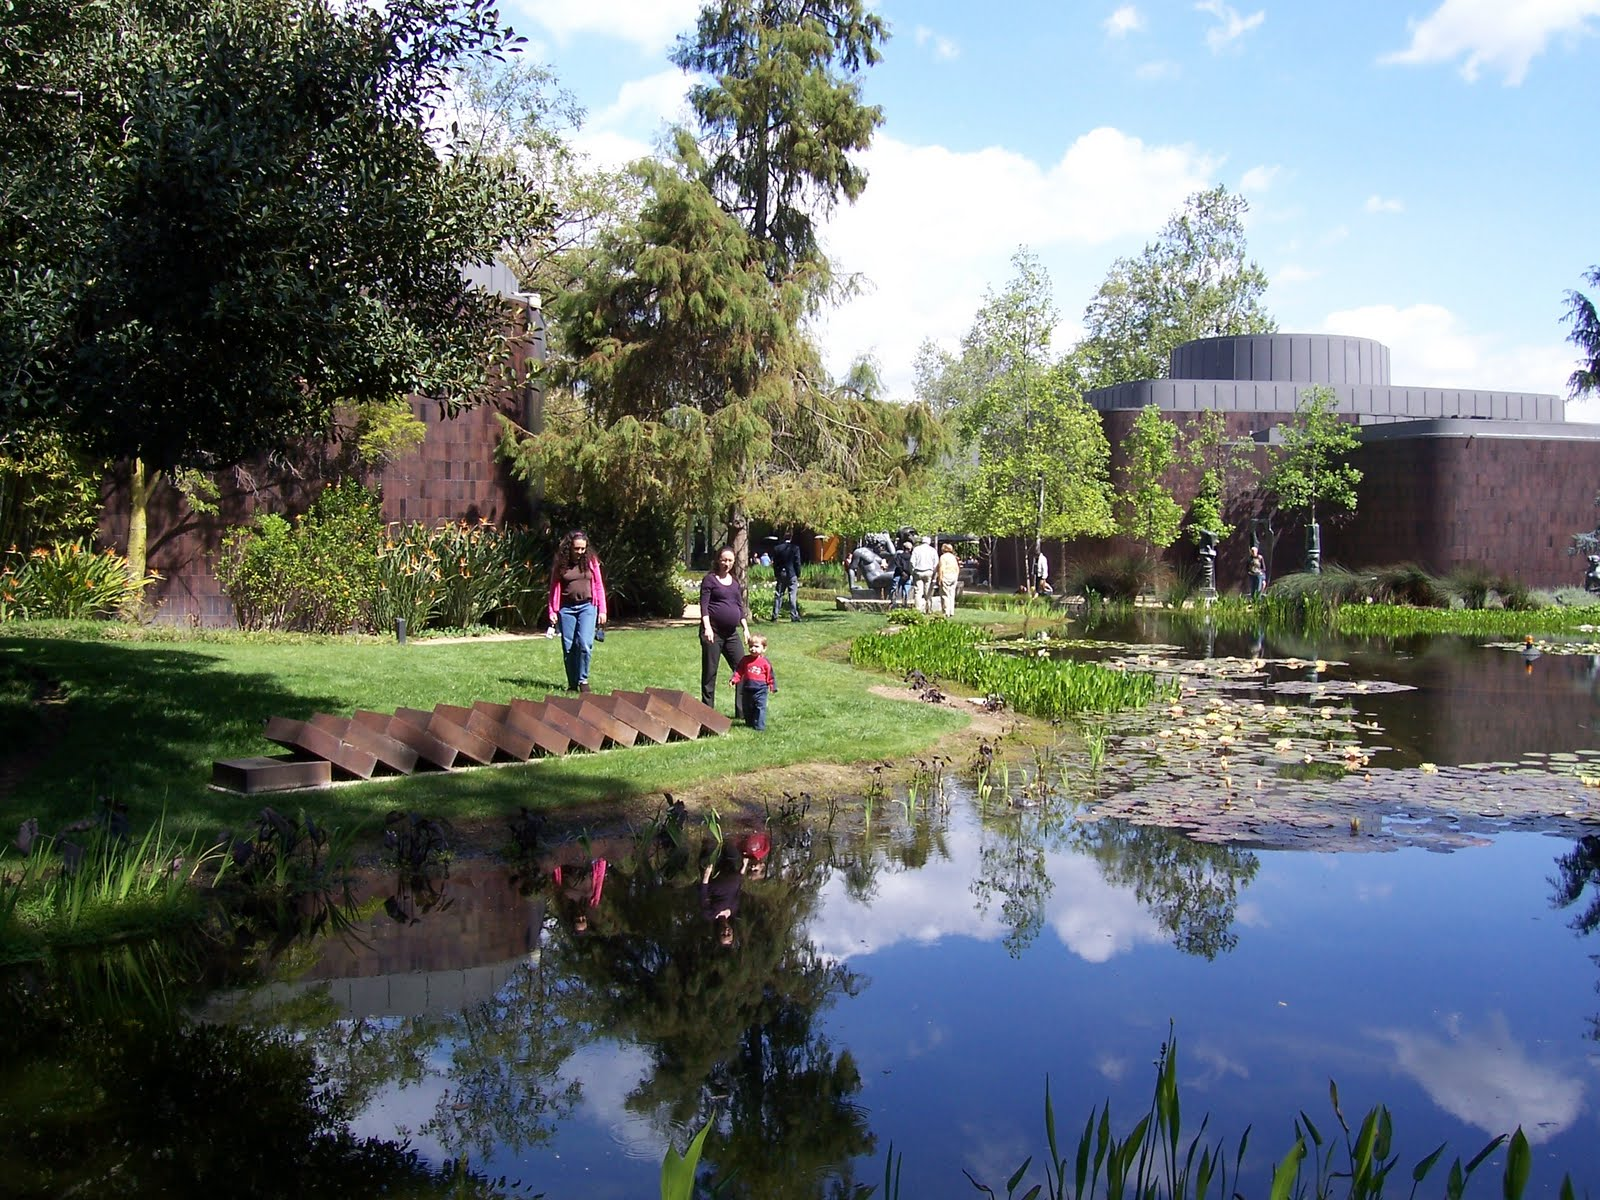 norton simon museum The norton simon museum is known around the world as one of the most   create a decorative object inspired by the works in our exhibition, in search of  new.